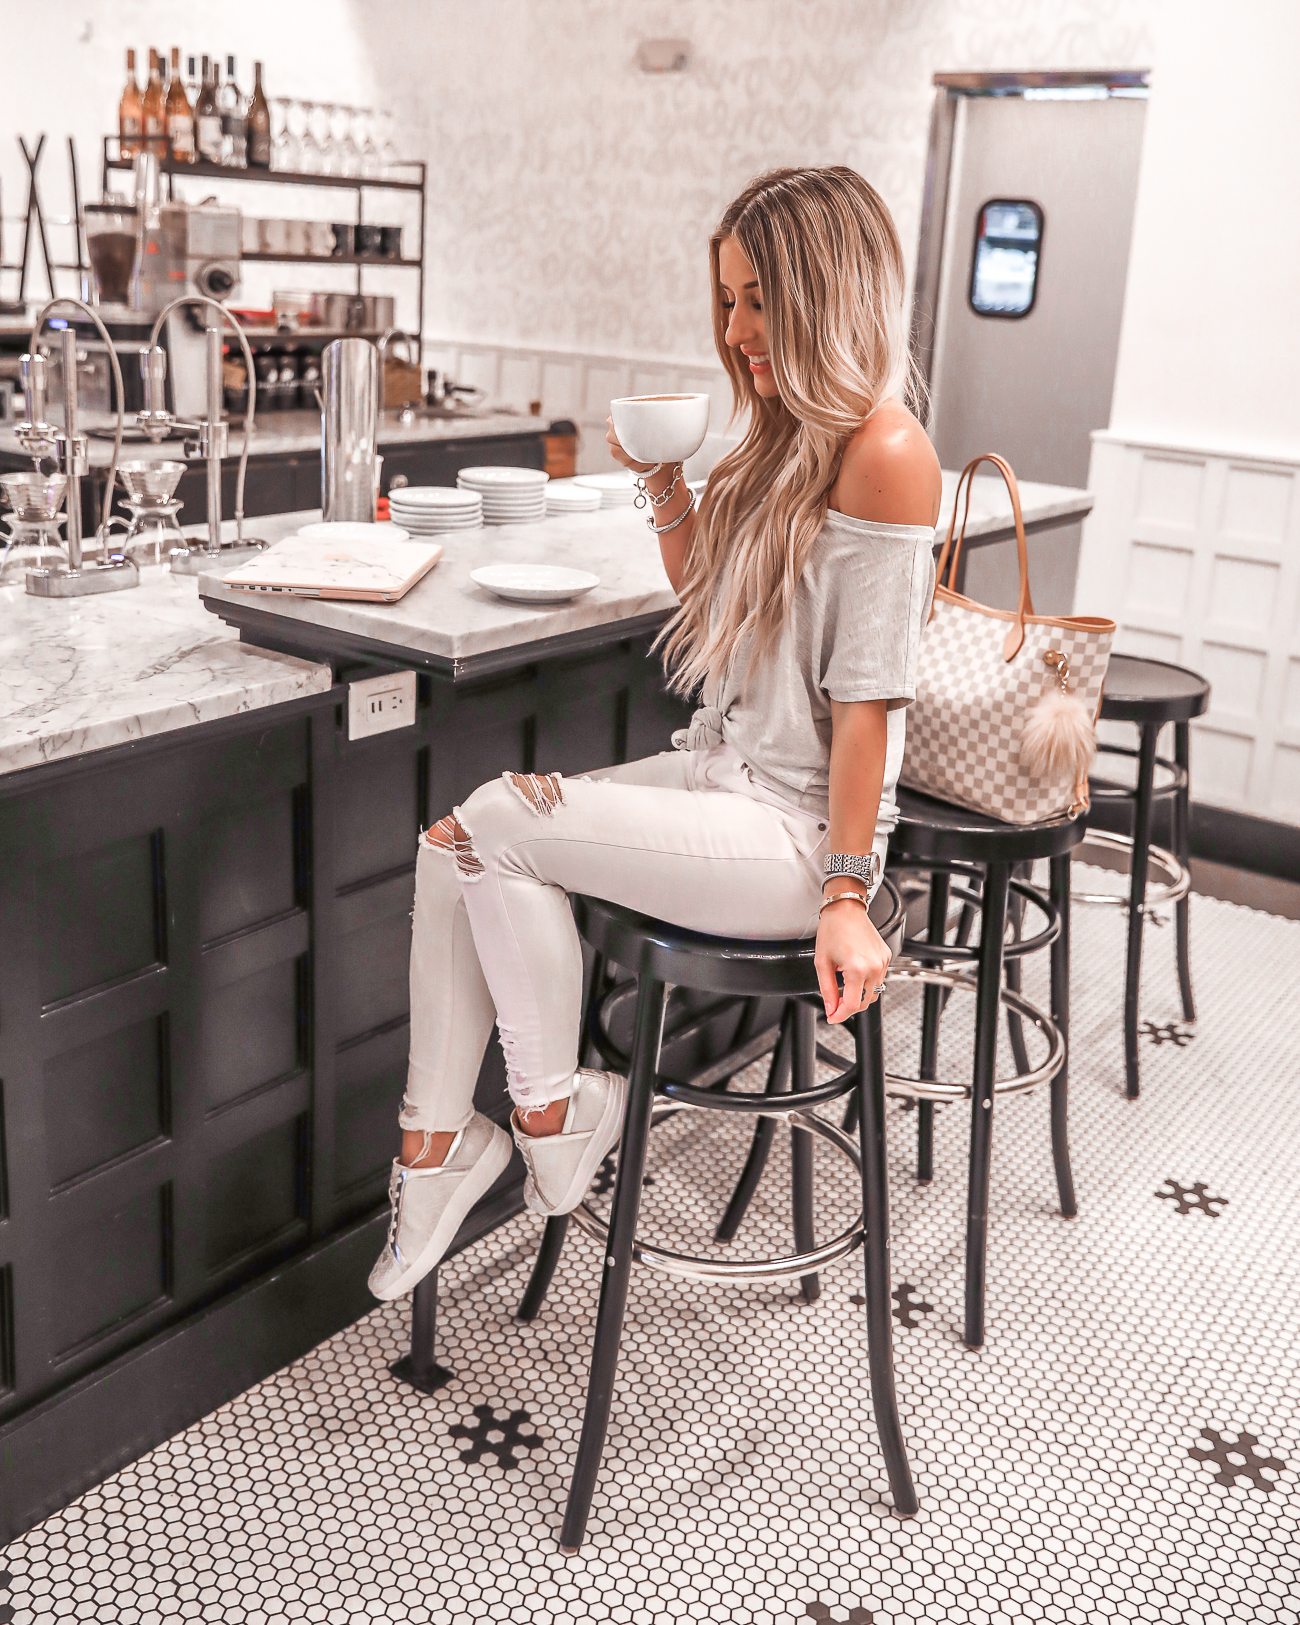 Buddy Brew Hype Park Tampa FitFlop Sneakers COMFY COFFEE HOUSE Outfit